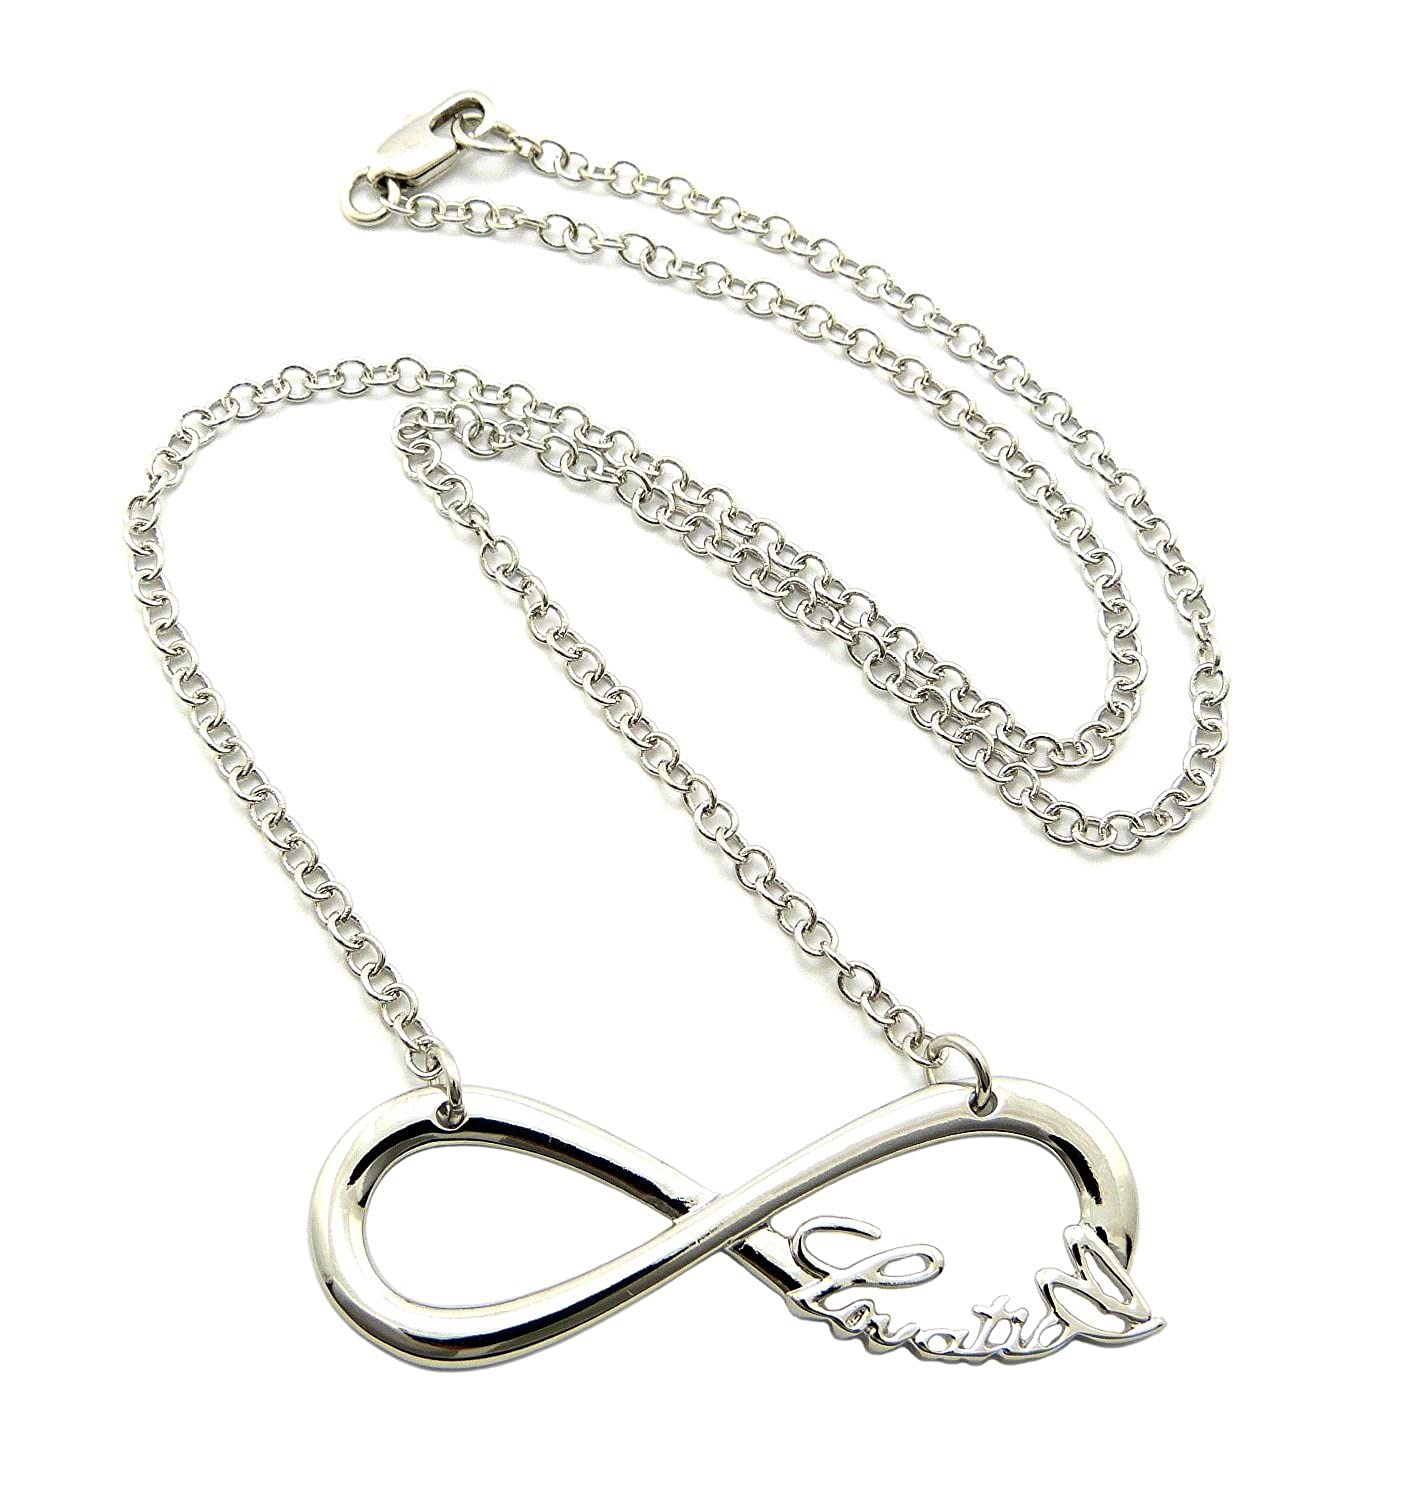 bracelets pendants ca tiffanyinfinity necklaces sign cb rings tiffany jewelry infinity necklace co collections